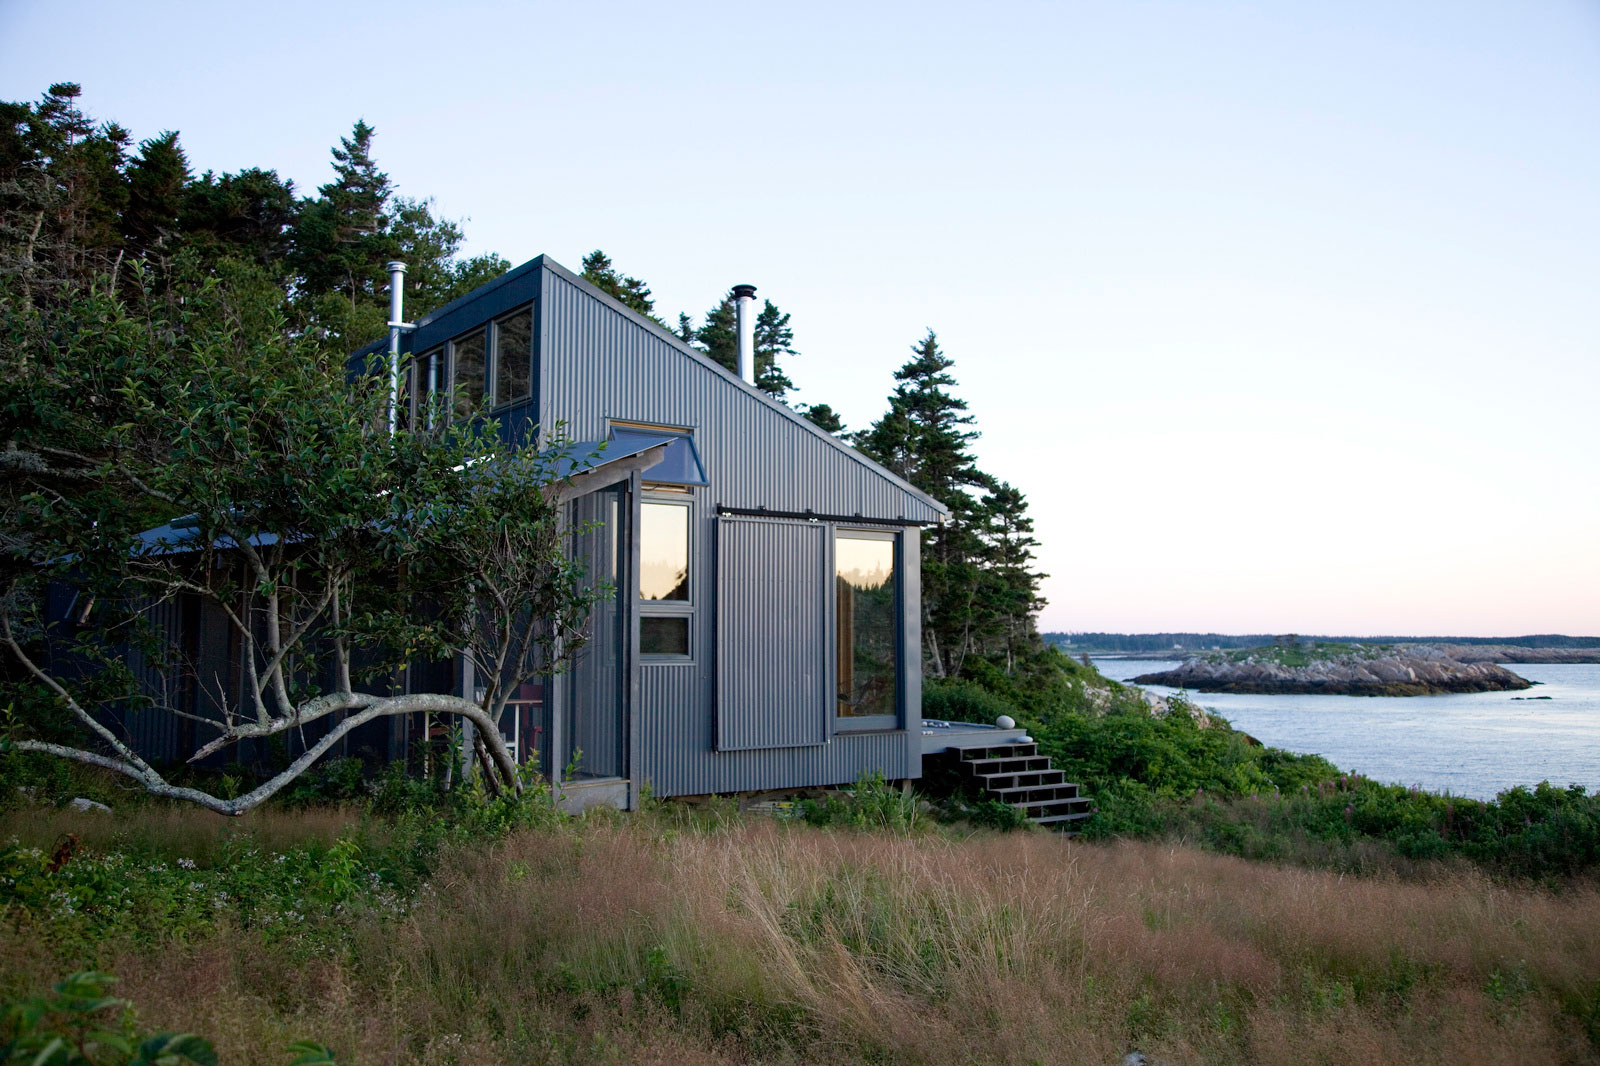 Porter cottage ragged island by alex scott porter design for Tiny home architects